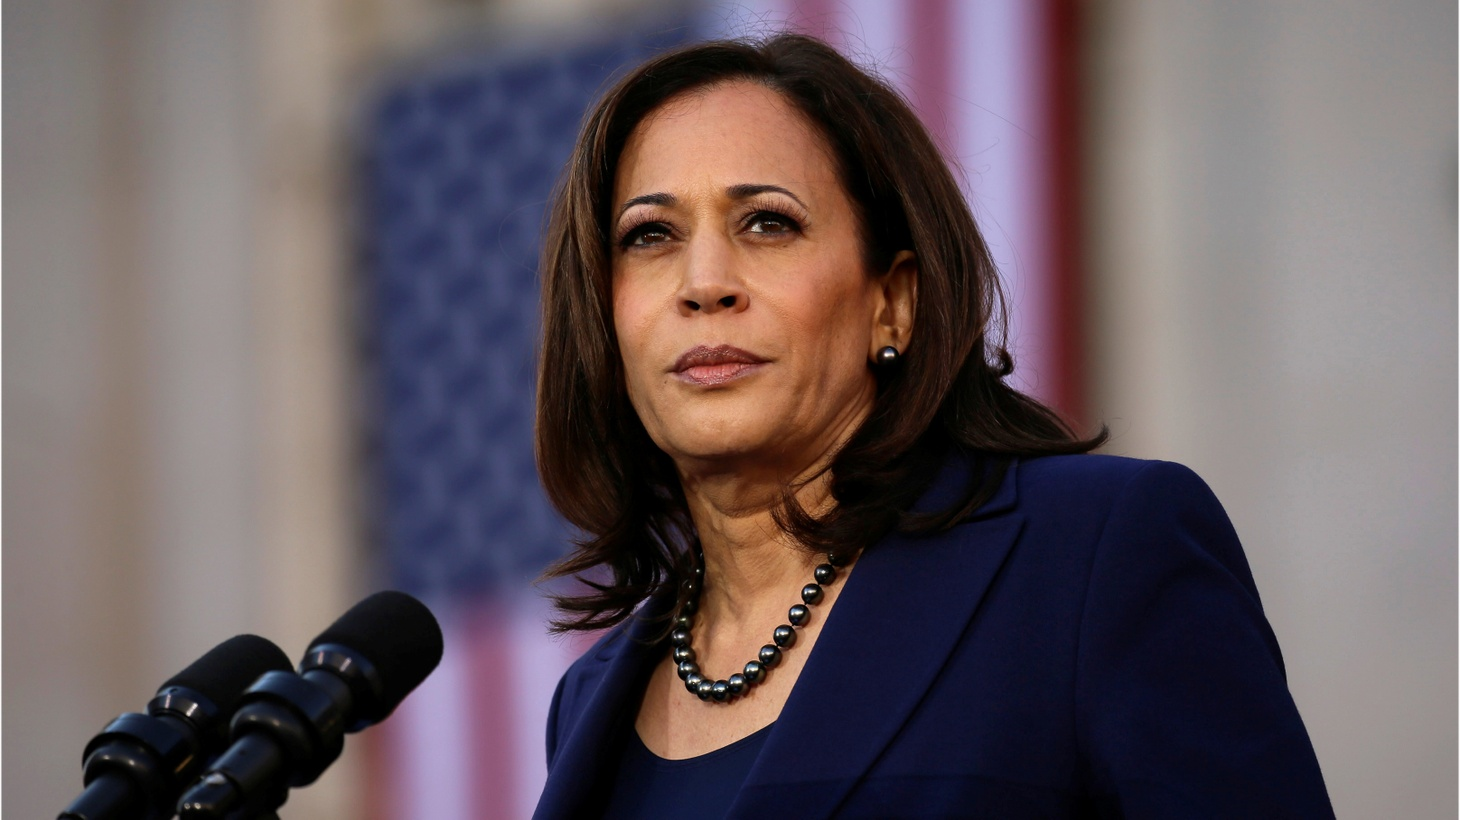 U.S. Senator Kamala Harris launches her campaign for President of the United States at a rally at Frank H. Ogawa Plaza in her hometown of Oakland, California, U.S., January 27, 2019.